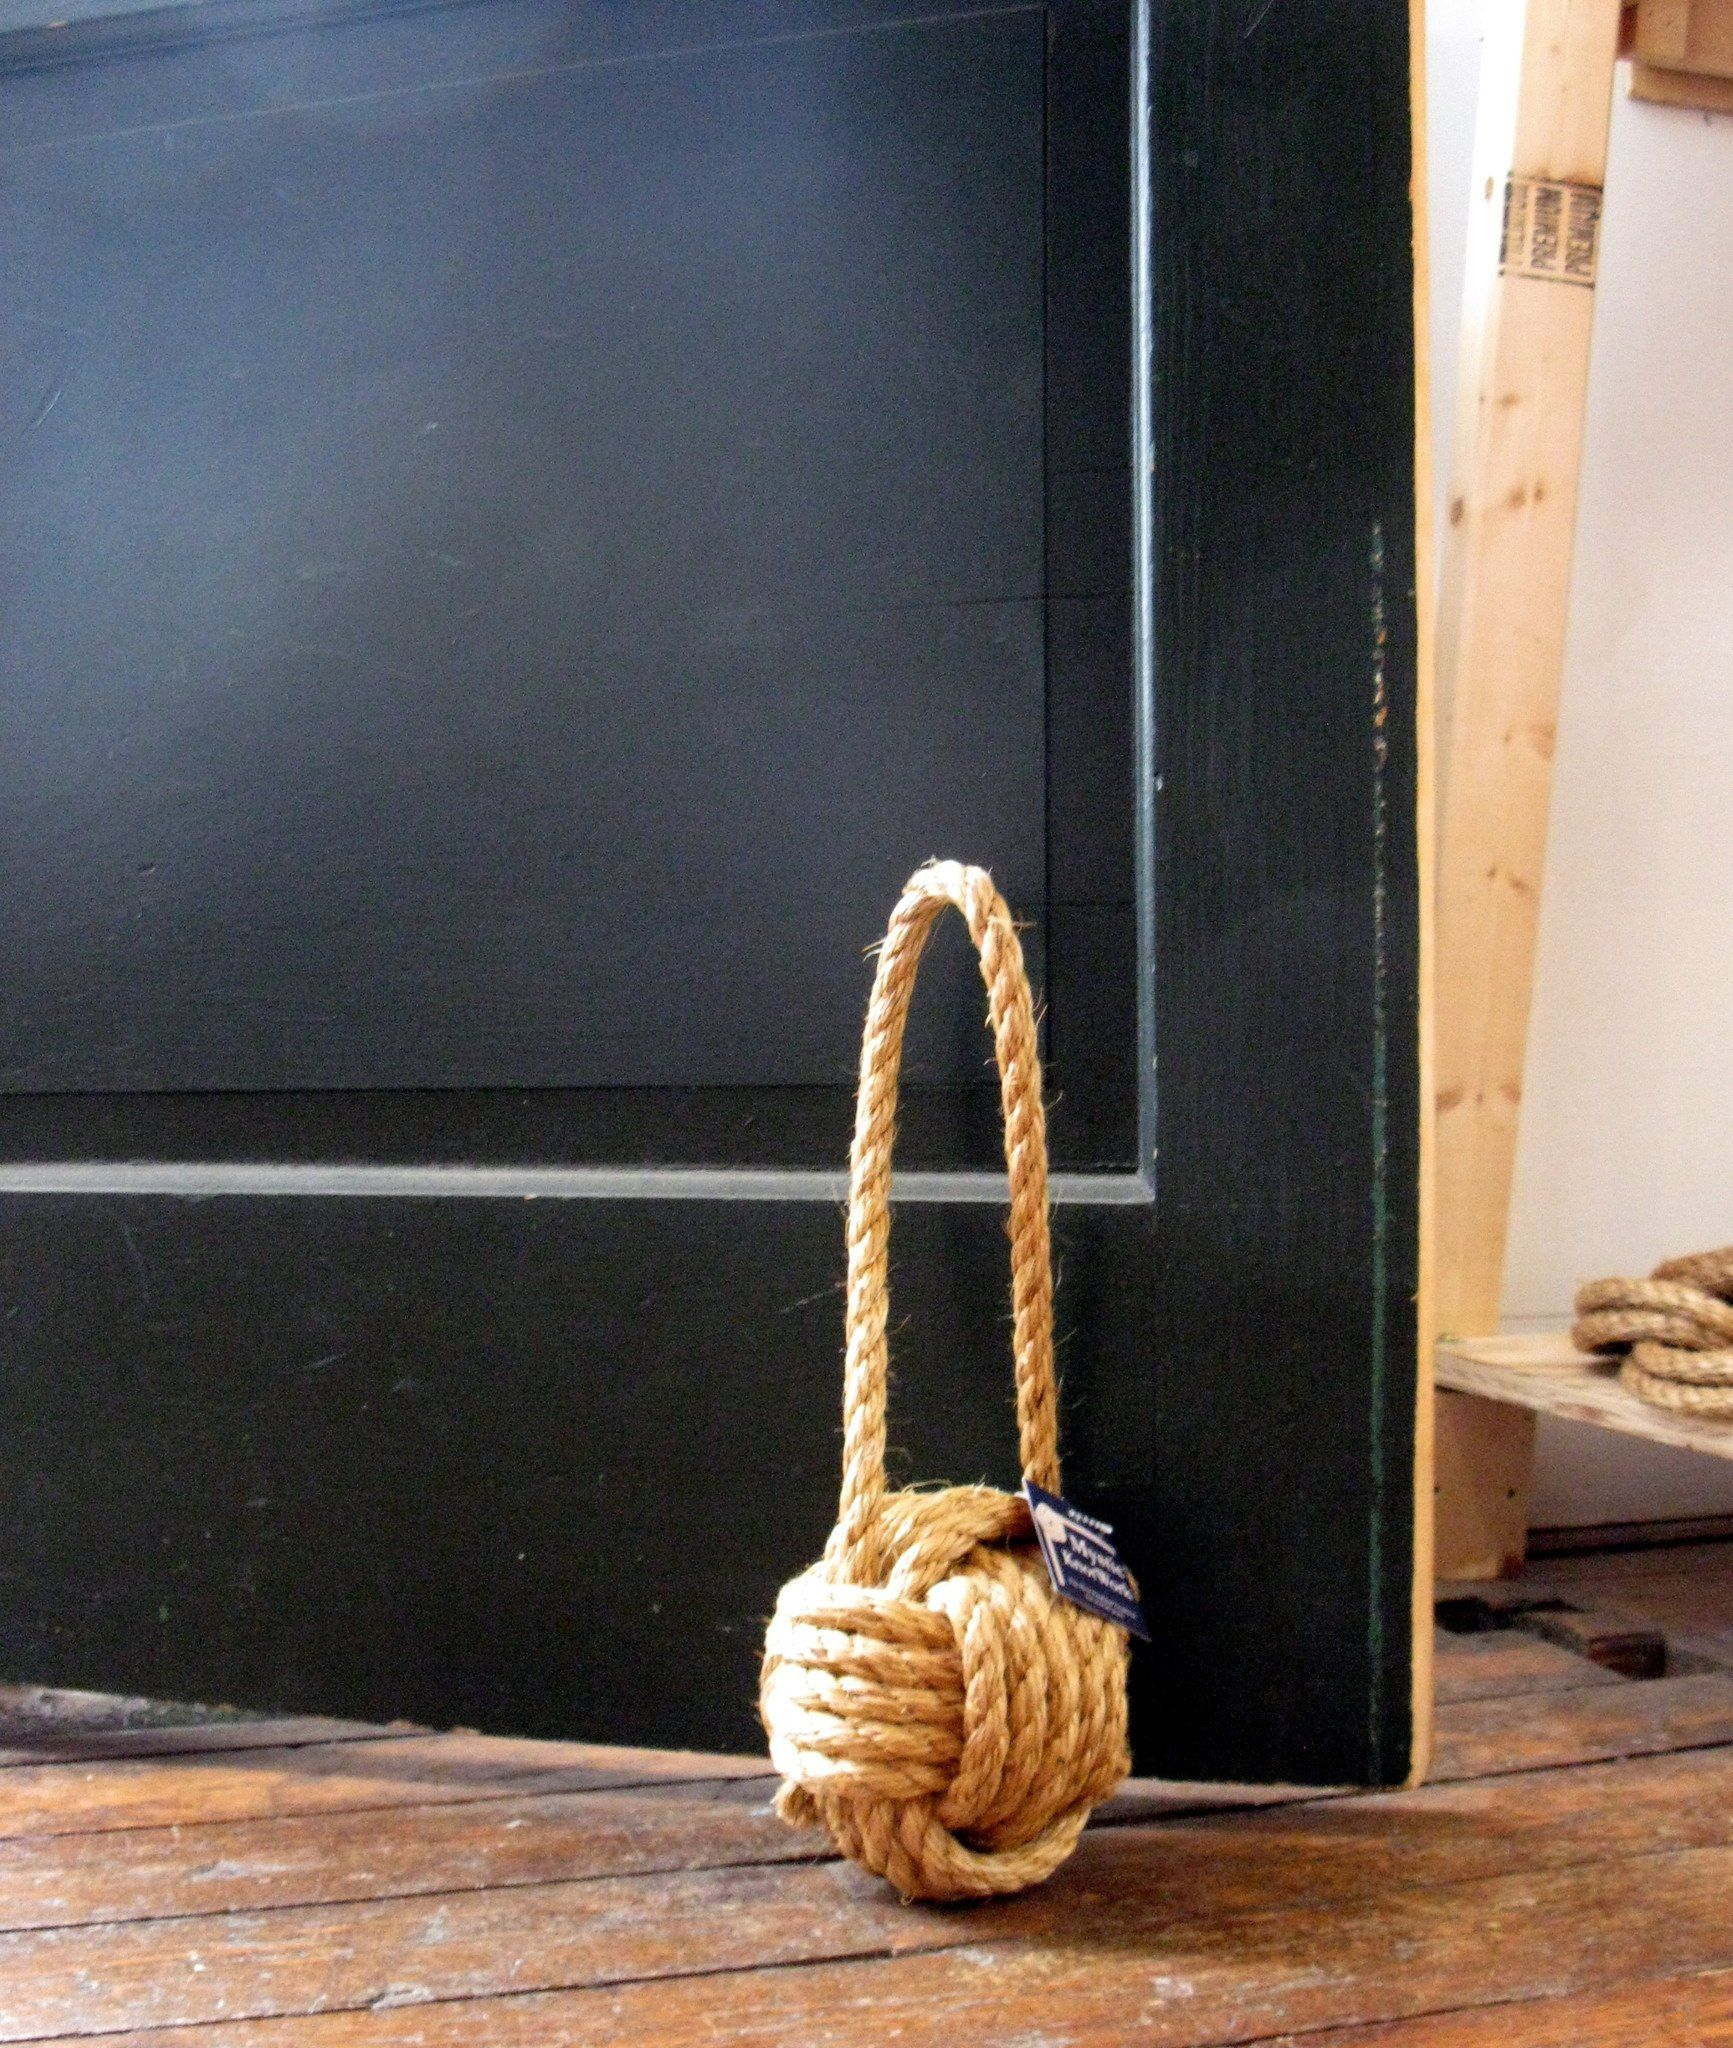 Nautical Monkey Fist Door Stop, Small Manila Handmade sailor knot American Made in Mystic, CT $ 35.00